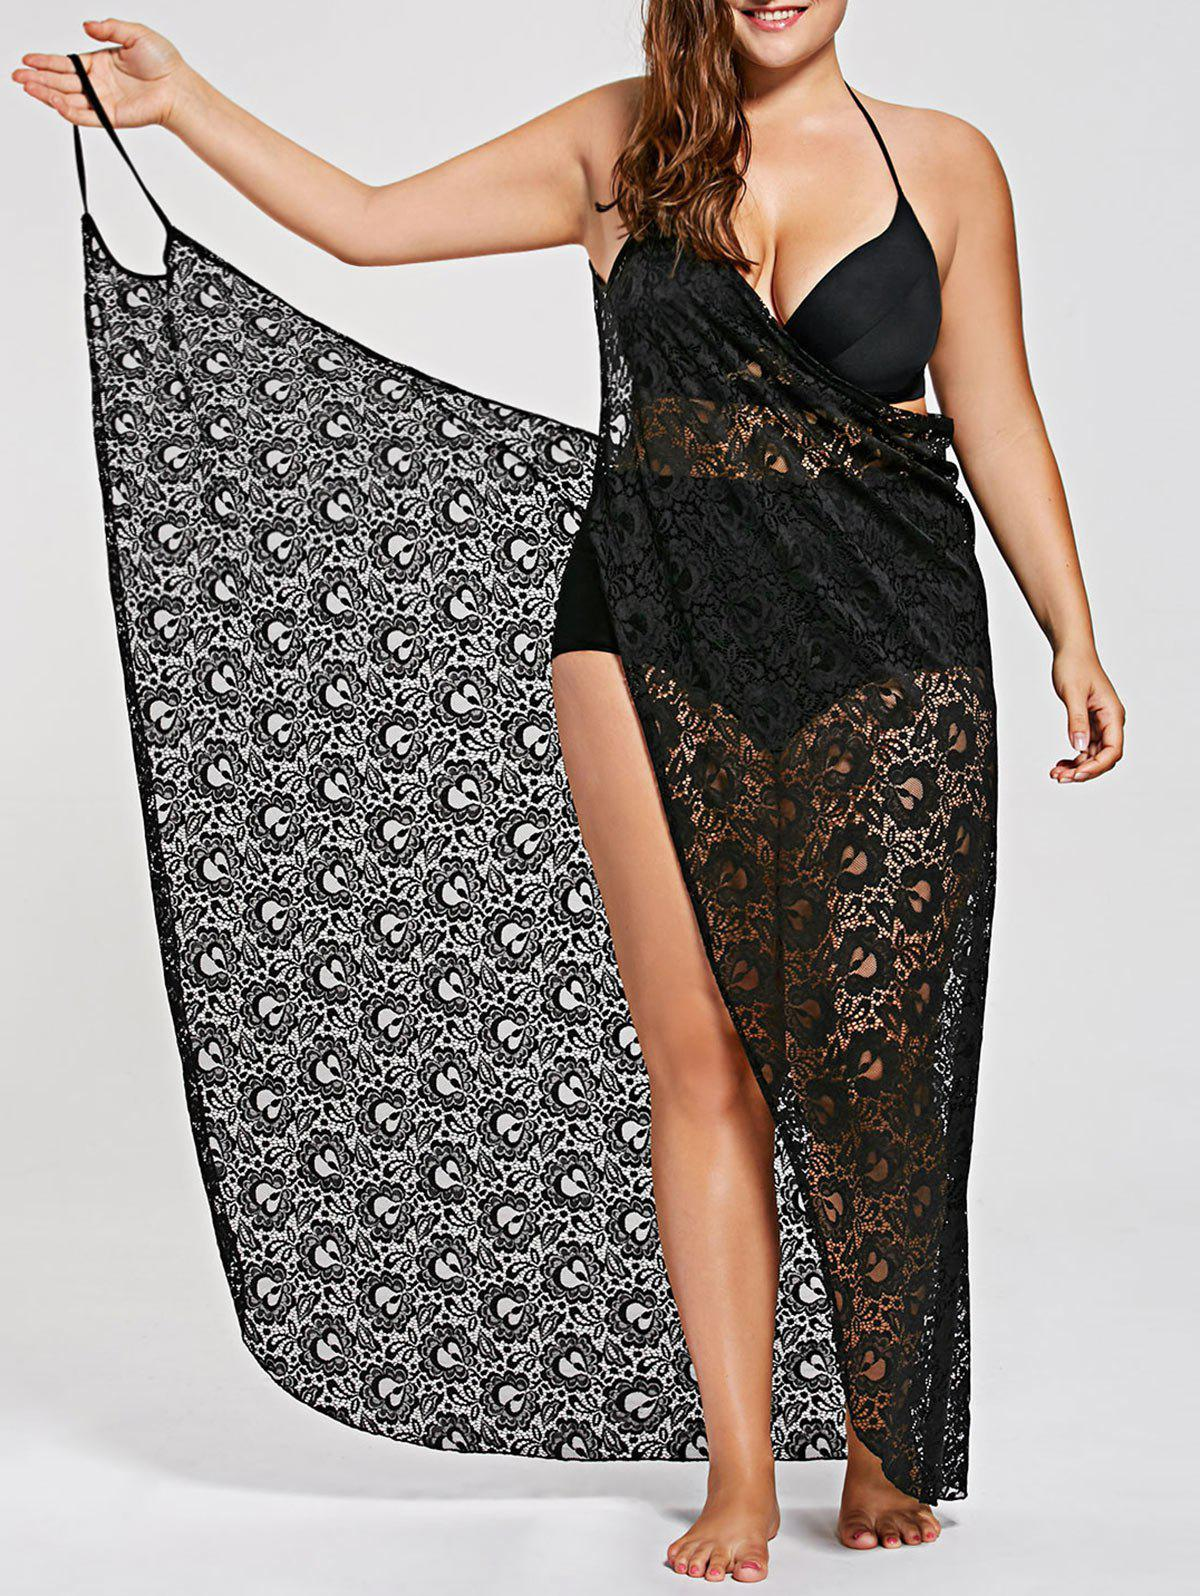 Plus Size Lace Wrap Cover Up DressWOMEN<br><br>Size: 3XL; Color: BLACK; Gender: For Women; Swimwear Type: Cover-Up; Material: Polyester,Spandex; Neckline: Spaghetti Straps; Pattern Type: Solid; Waist: Natural; Elasticity: Micro-elastic; Weight: 0.2600kg; Package Contents: 1 x Dress;